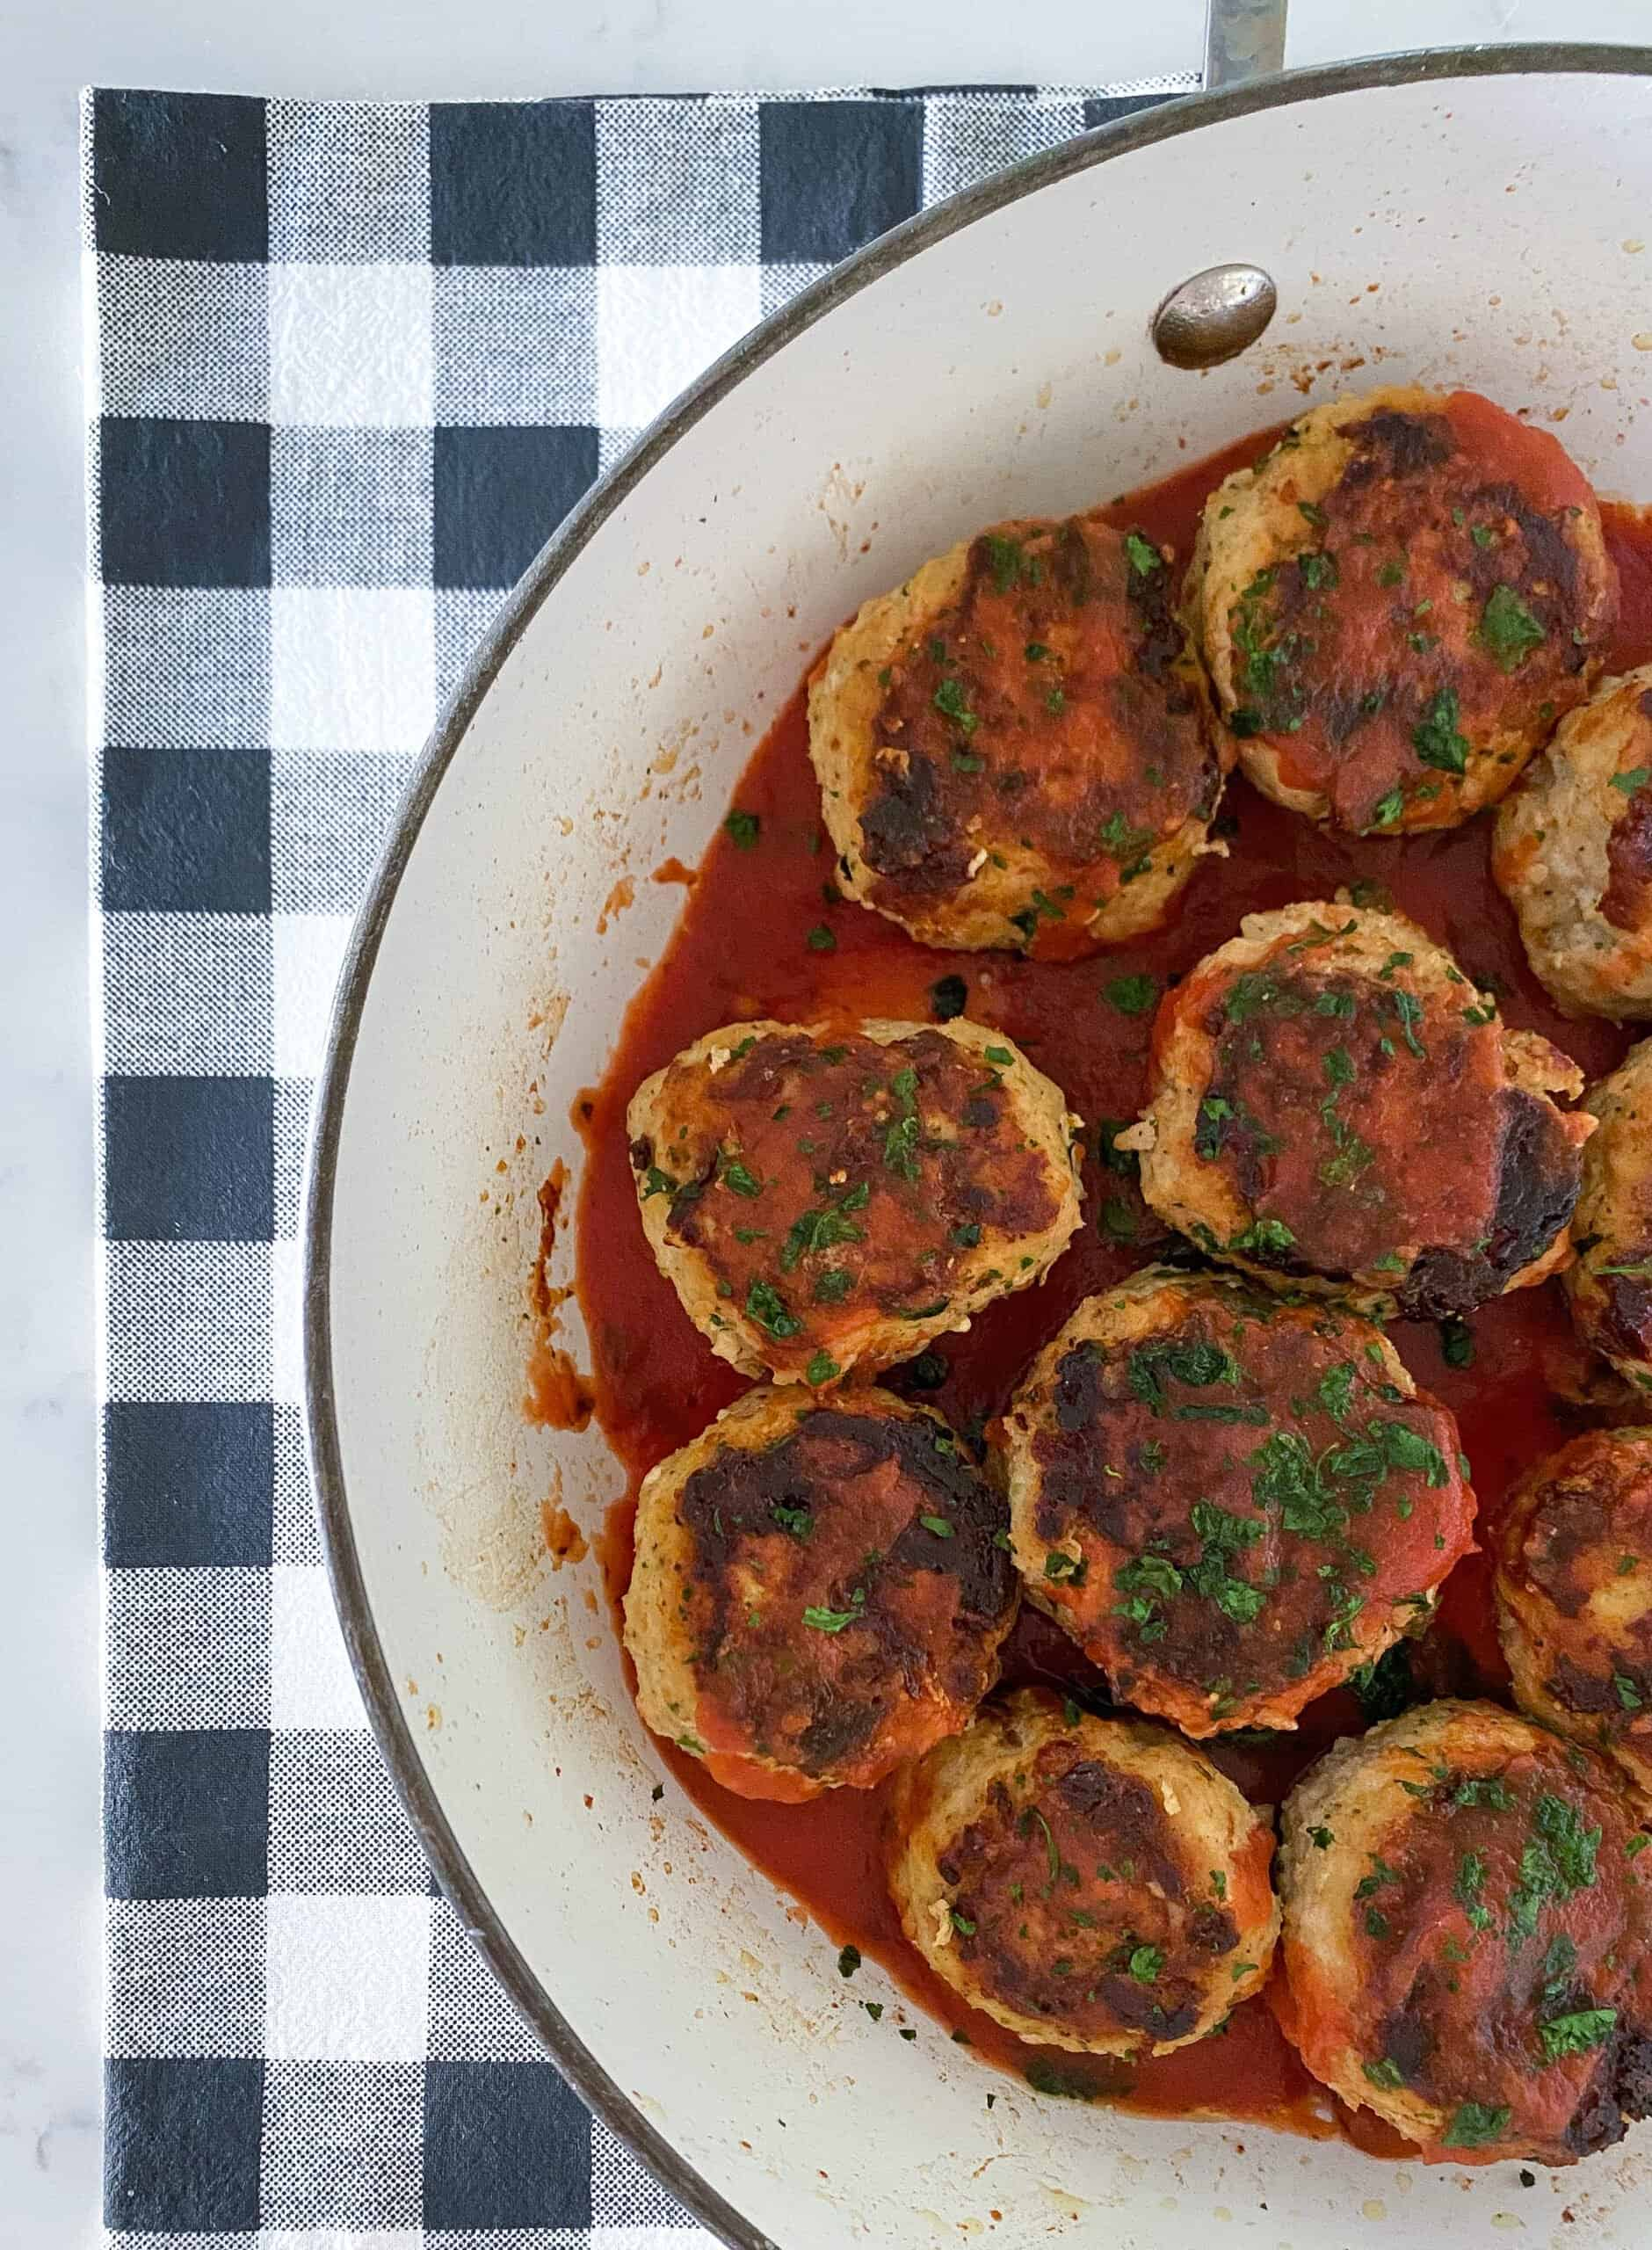 A bowl full of ground chicken meatballs in sauce